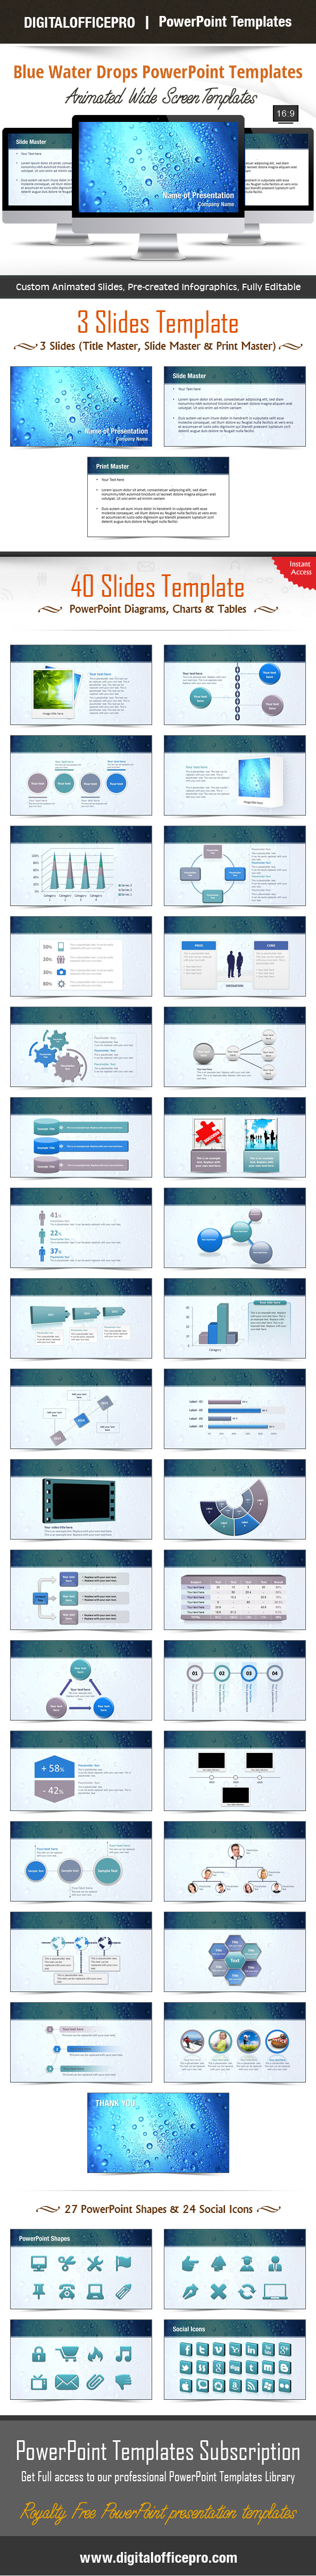 Blue water drops powerpoint template backgrounds water drops impress and engage your audience with blue water drops powerpoint template and blue water drops powerpoint toneelgroepblik Images